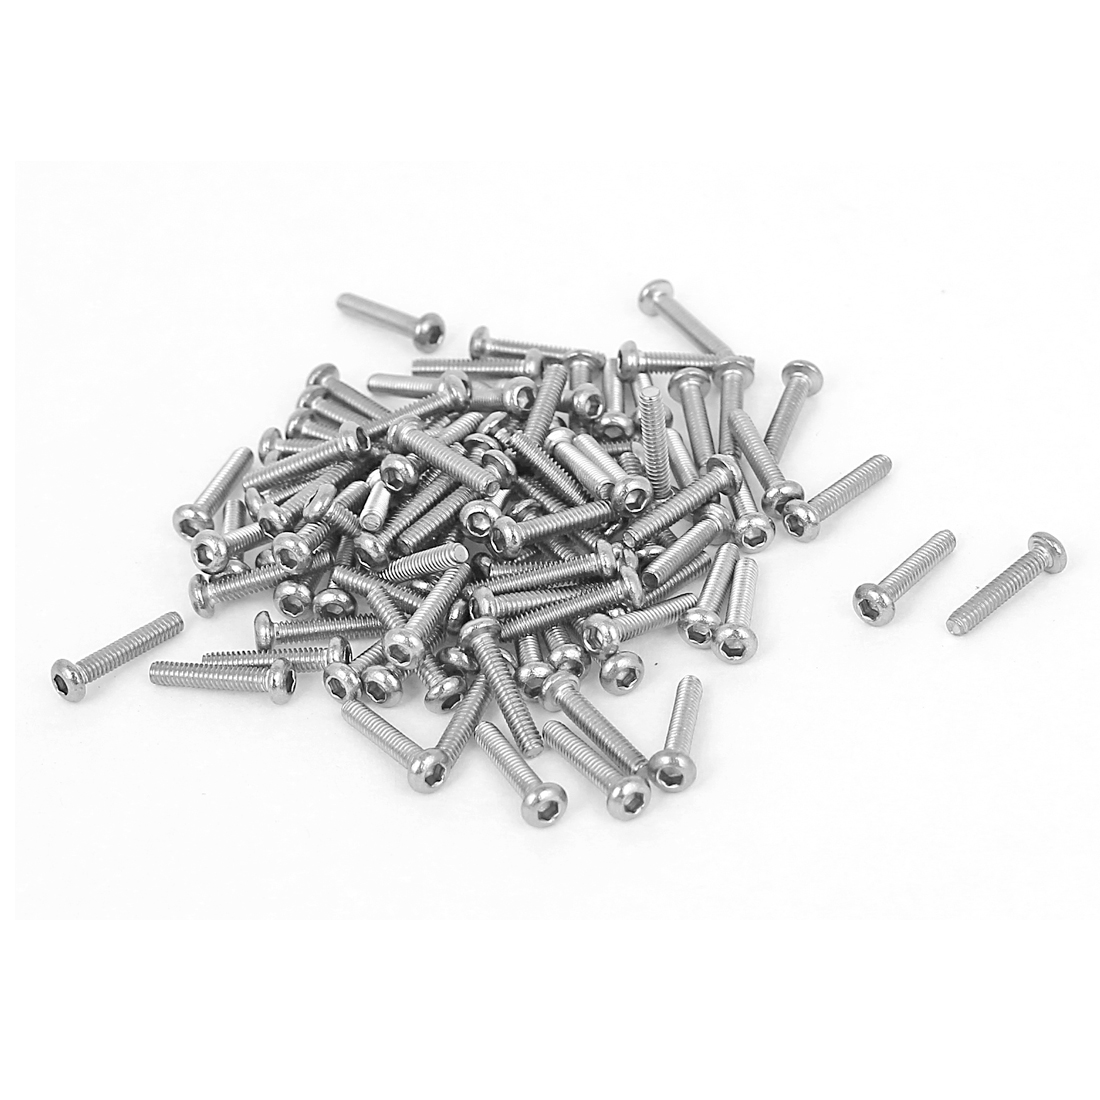 100 Pcs M2x10mm Stainless Steel Hex Socket Button Head Bolts Machine Screws